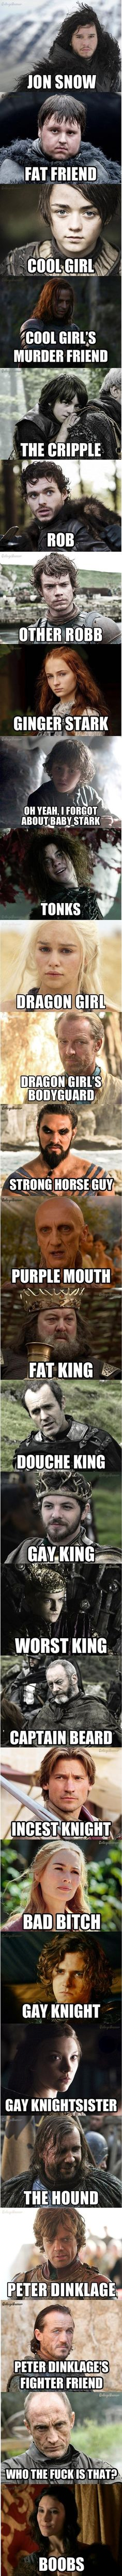 Game of Thrones ! This sums it up if your bad at remembering names hehe